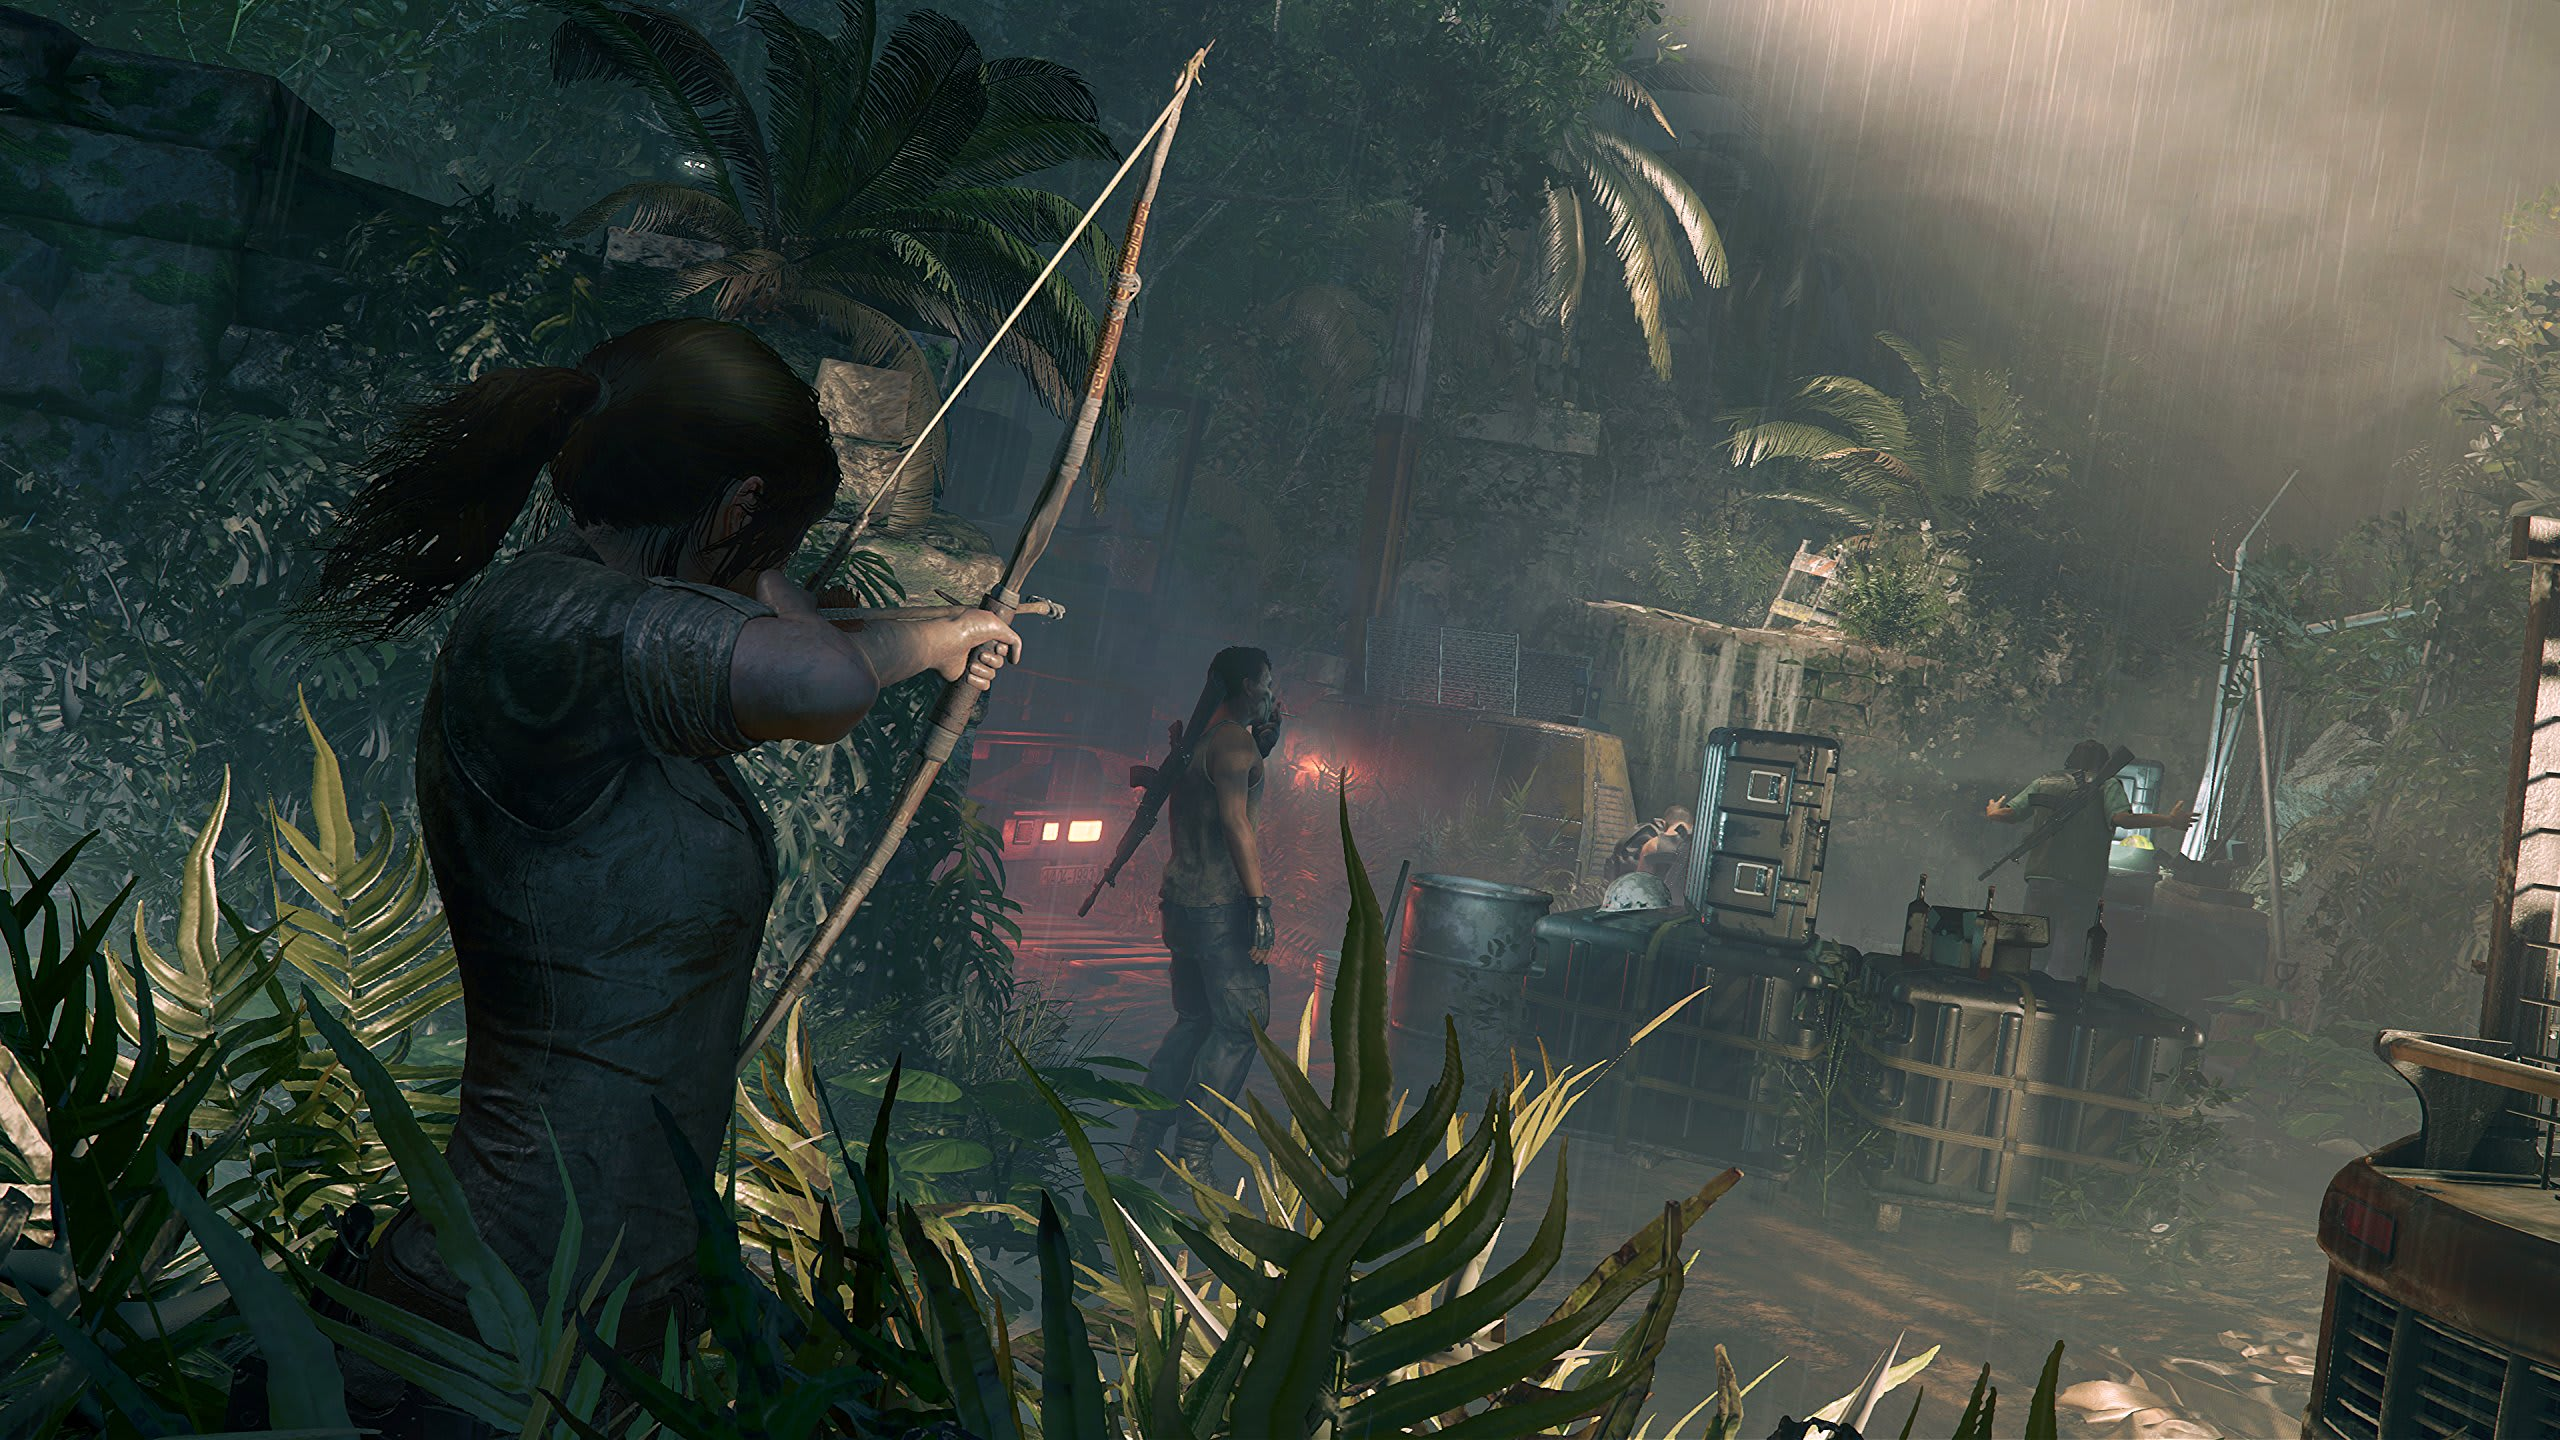 In Shadow Of The Tomb Raider Lara Croft Has The Skills To